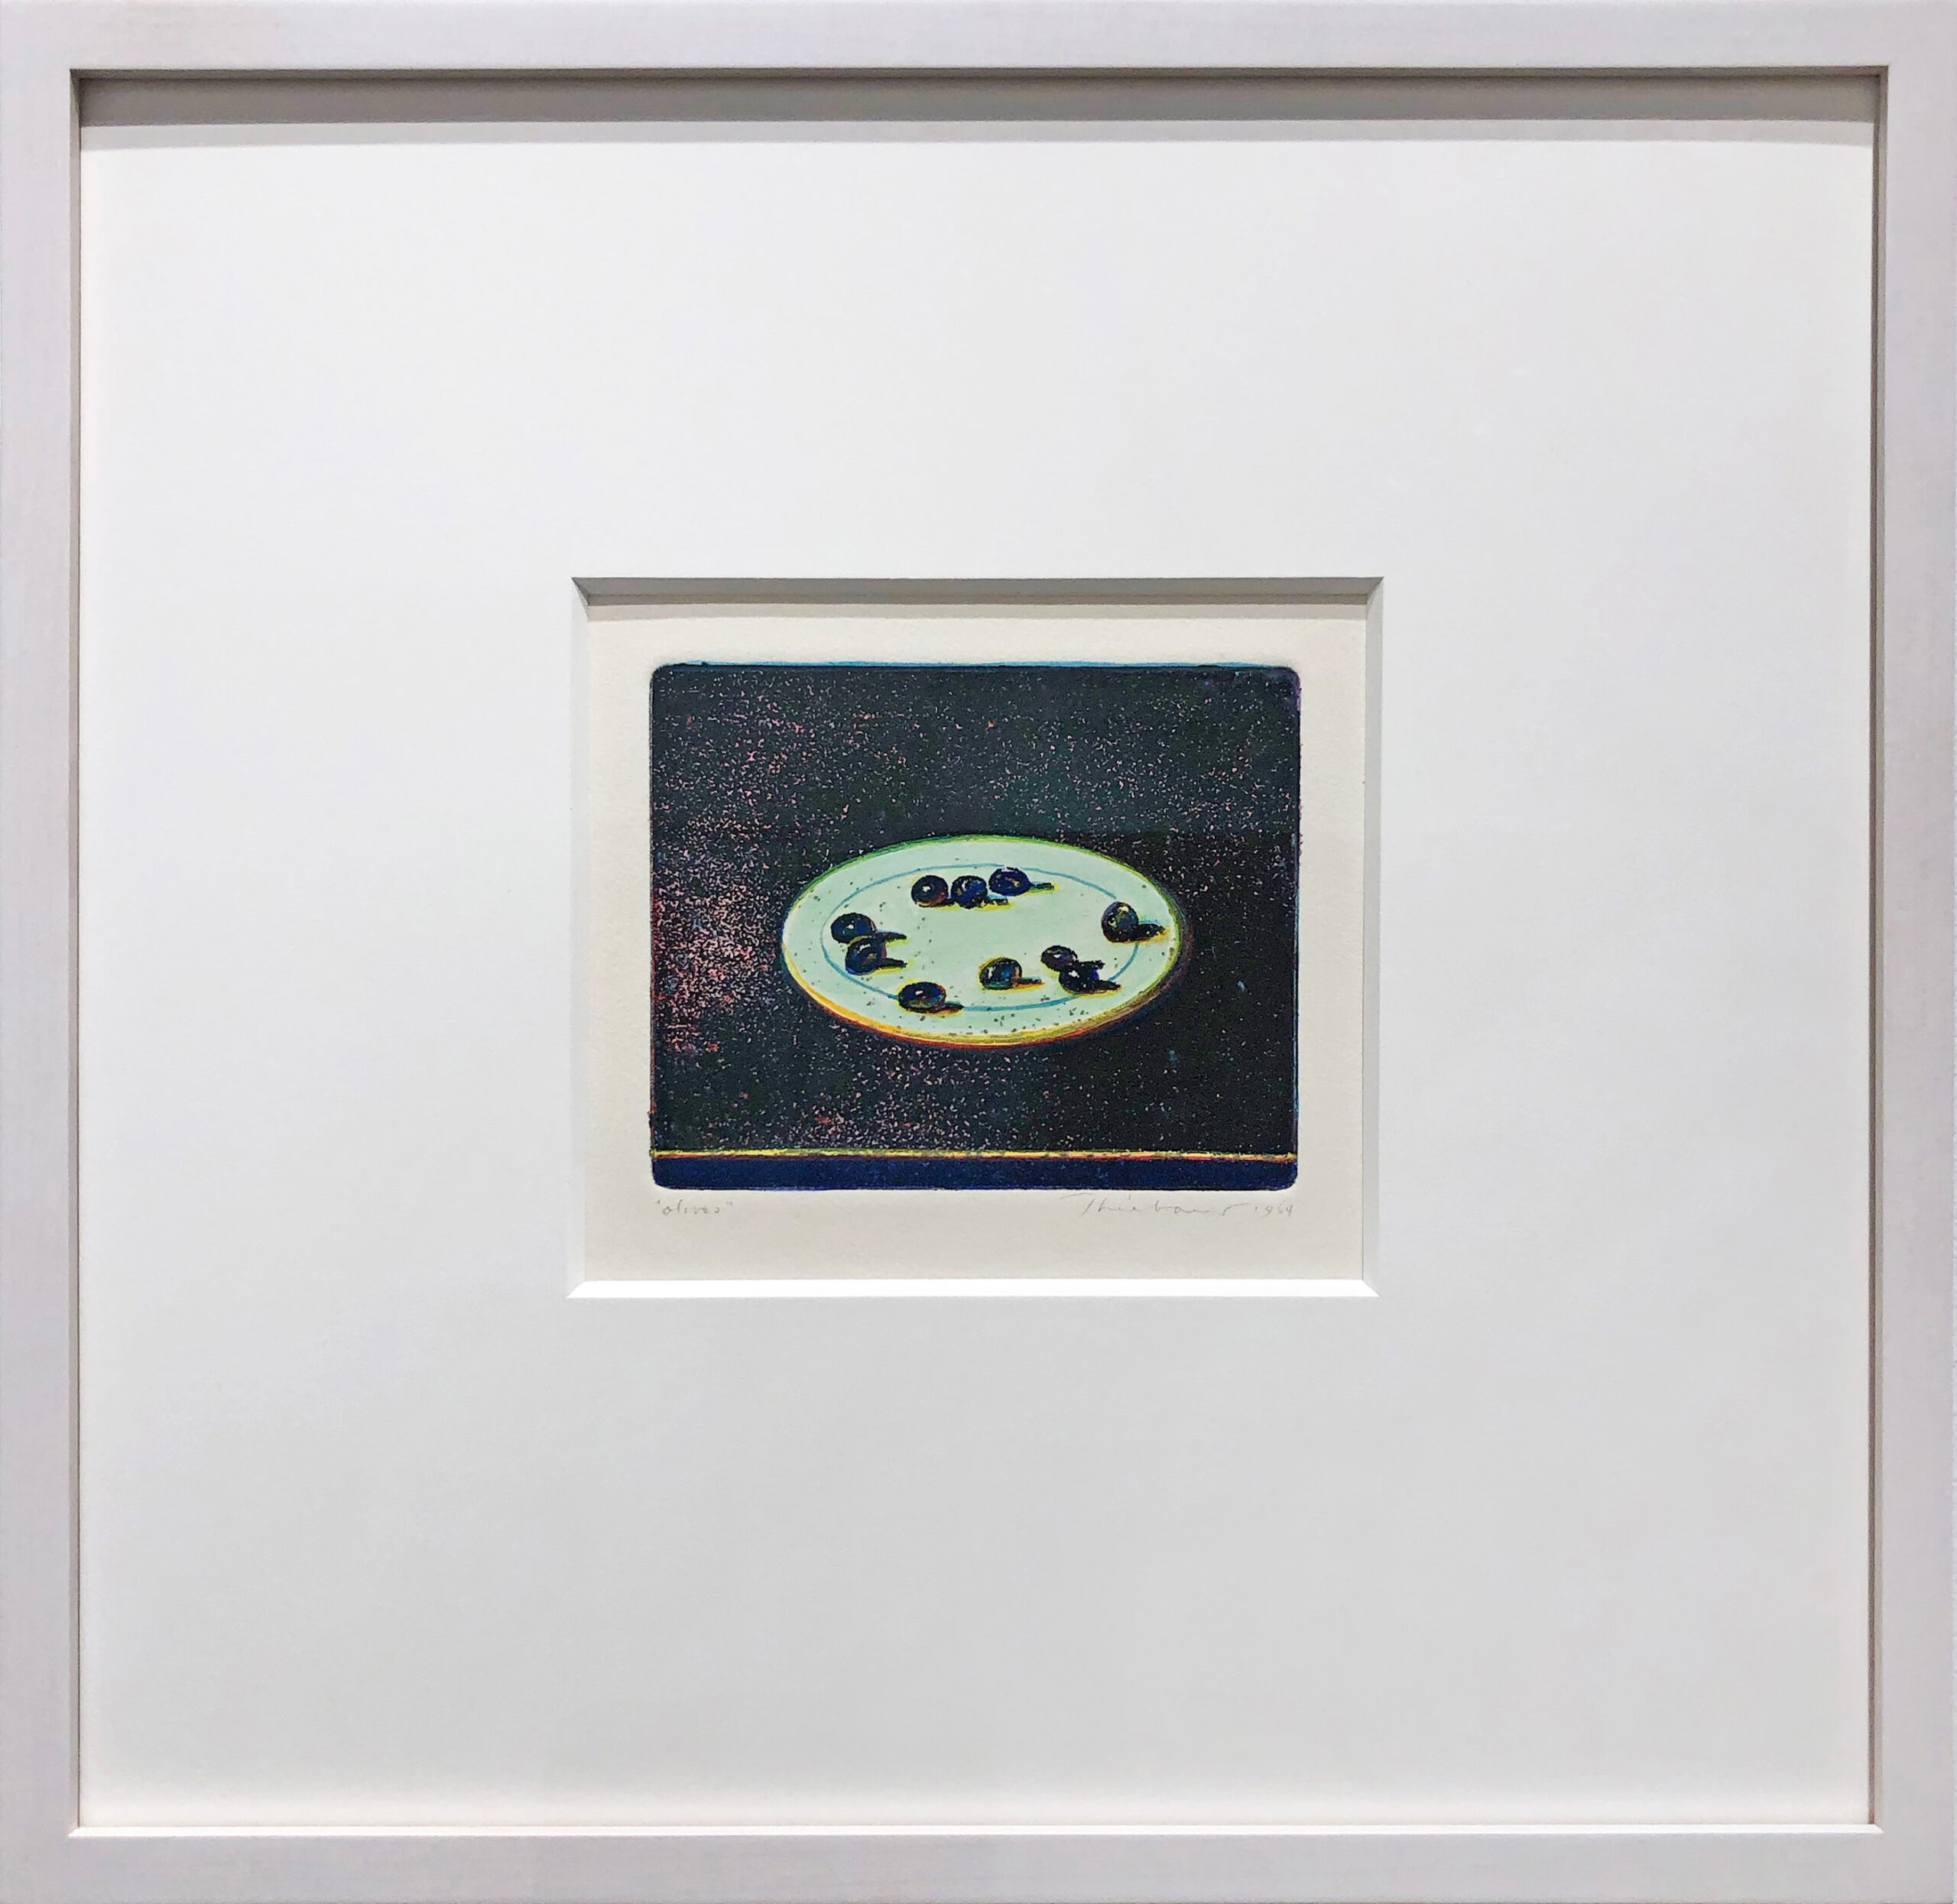 framed photo of Wayne Thiebaud's olives work on paper